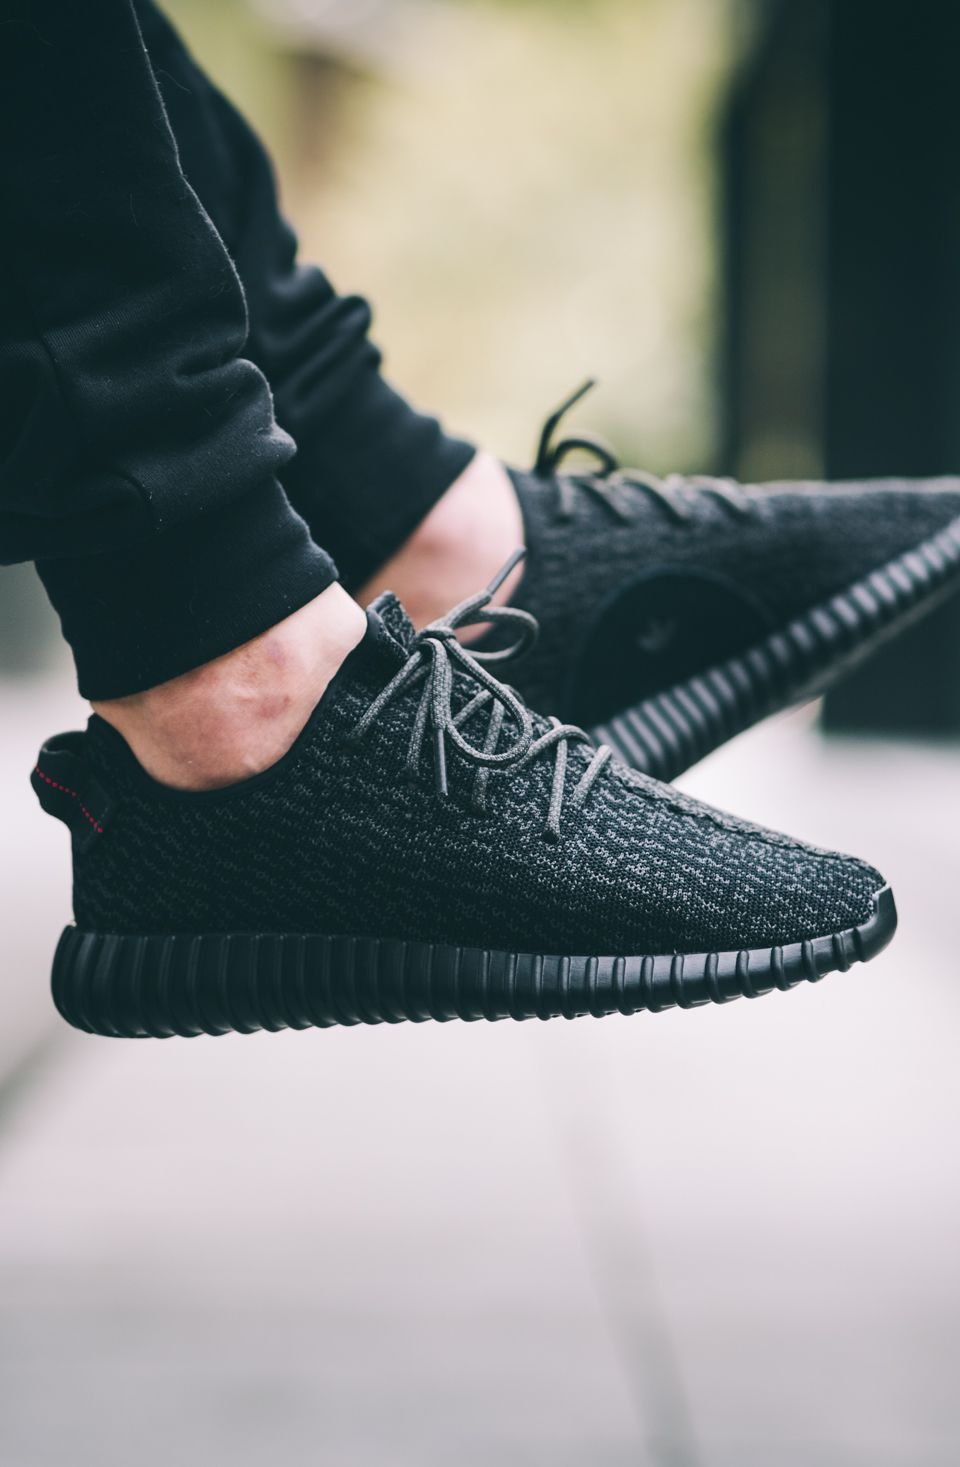 adidas Originals Yeezy 350 Boost 'Pirate Black' (via Kicks-daily.com